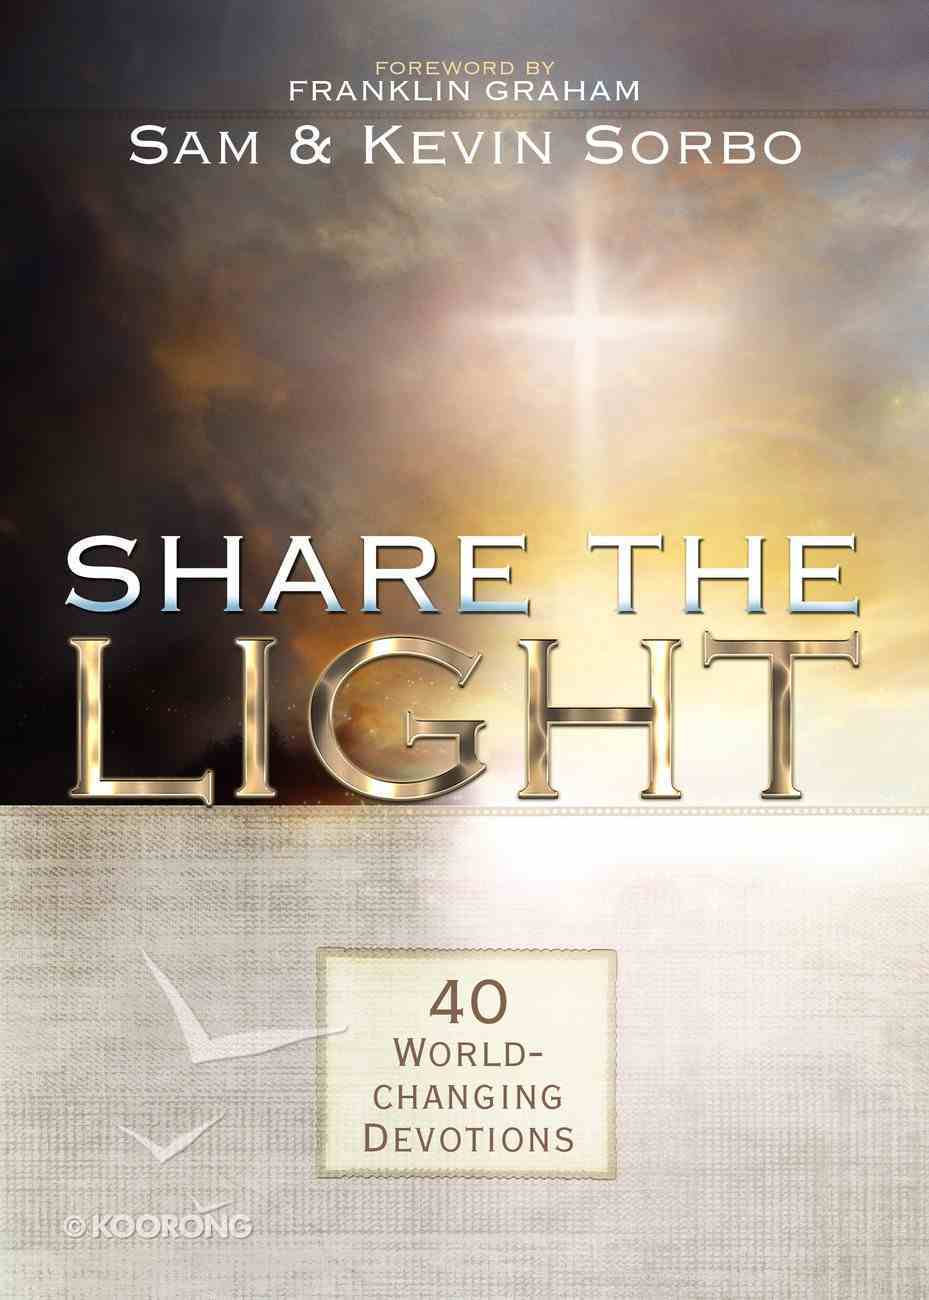 Share the Light: 40 World Changing Devotions (Let There Be Light Movie Reference) Paperback